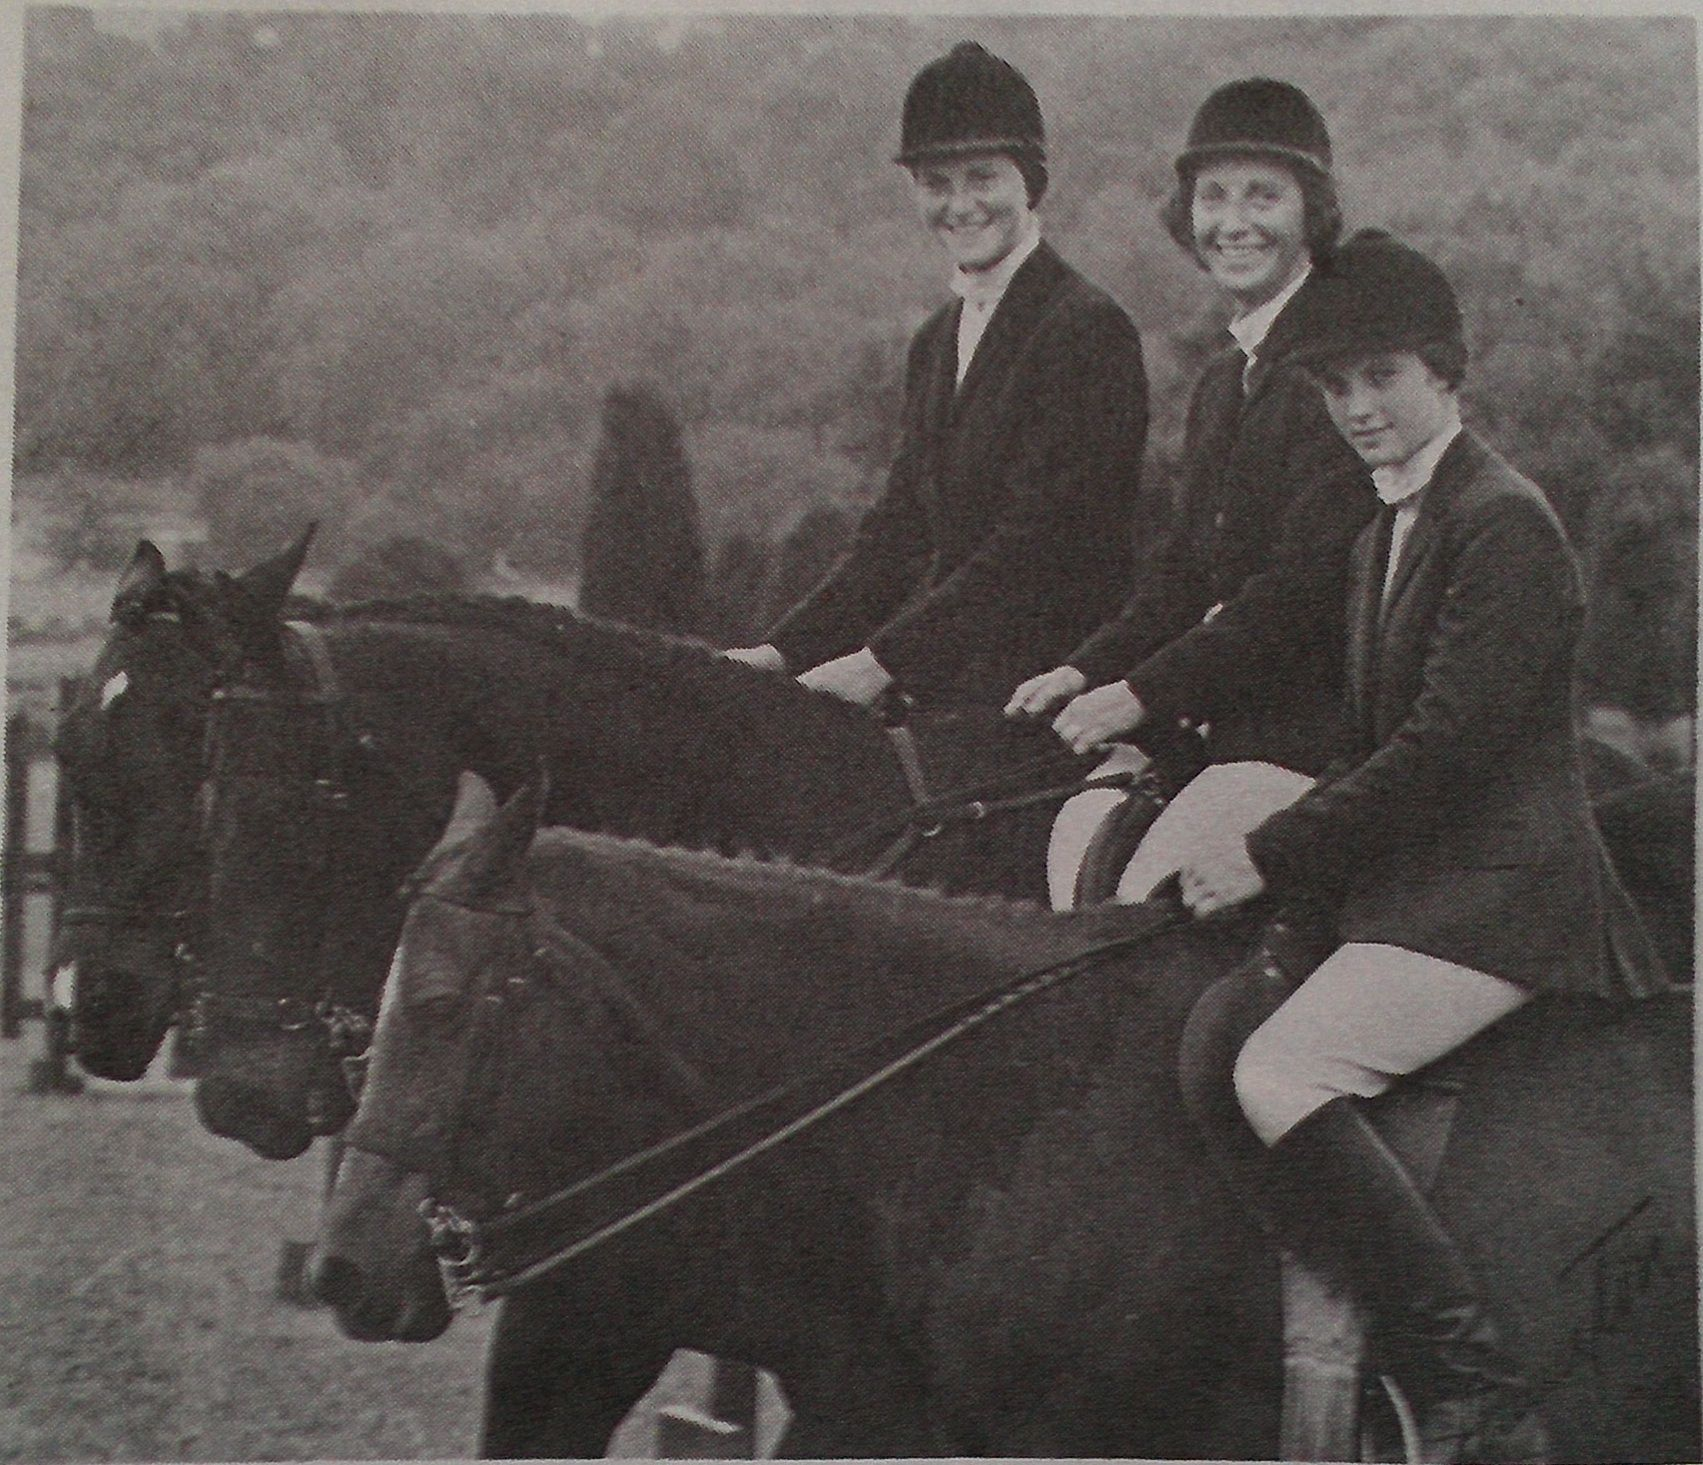 Mrs. T. G. Pennington and daughters Inez & Jennifer, winners of the Family Class at the Middle Tenessee Pony Club in 1973. Photo by Pennington.